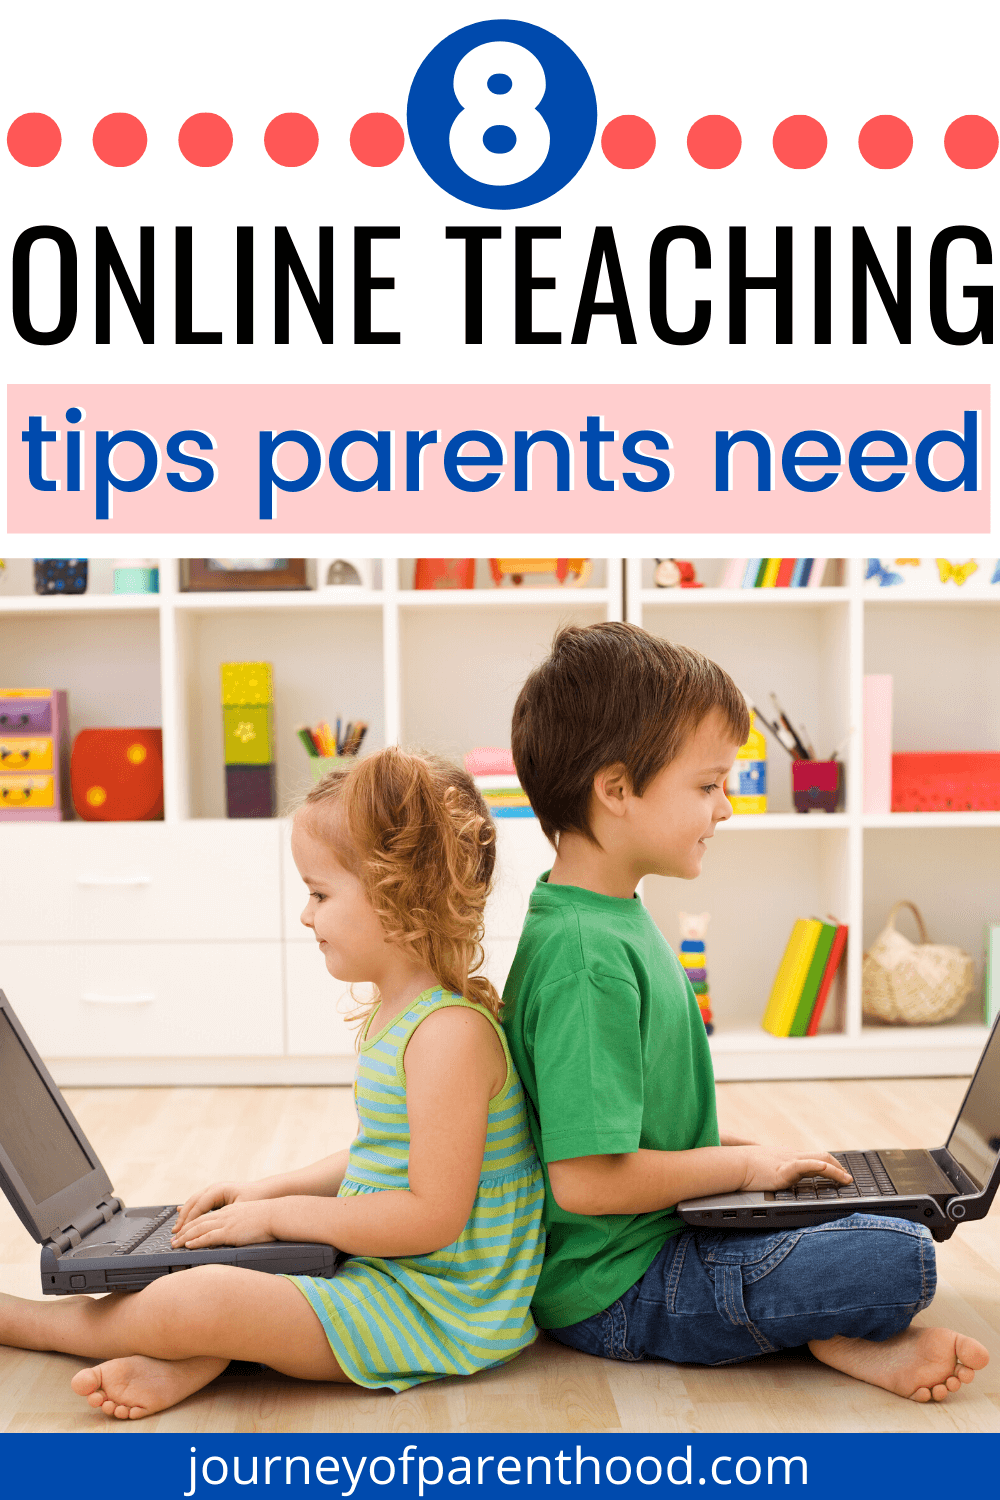 8 online teaching tips parents need